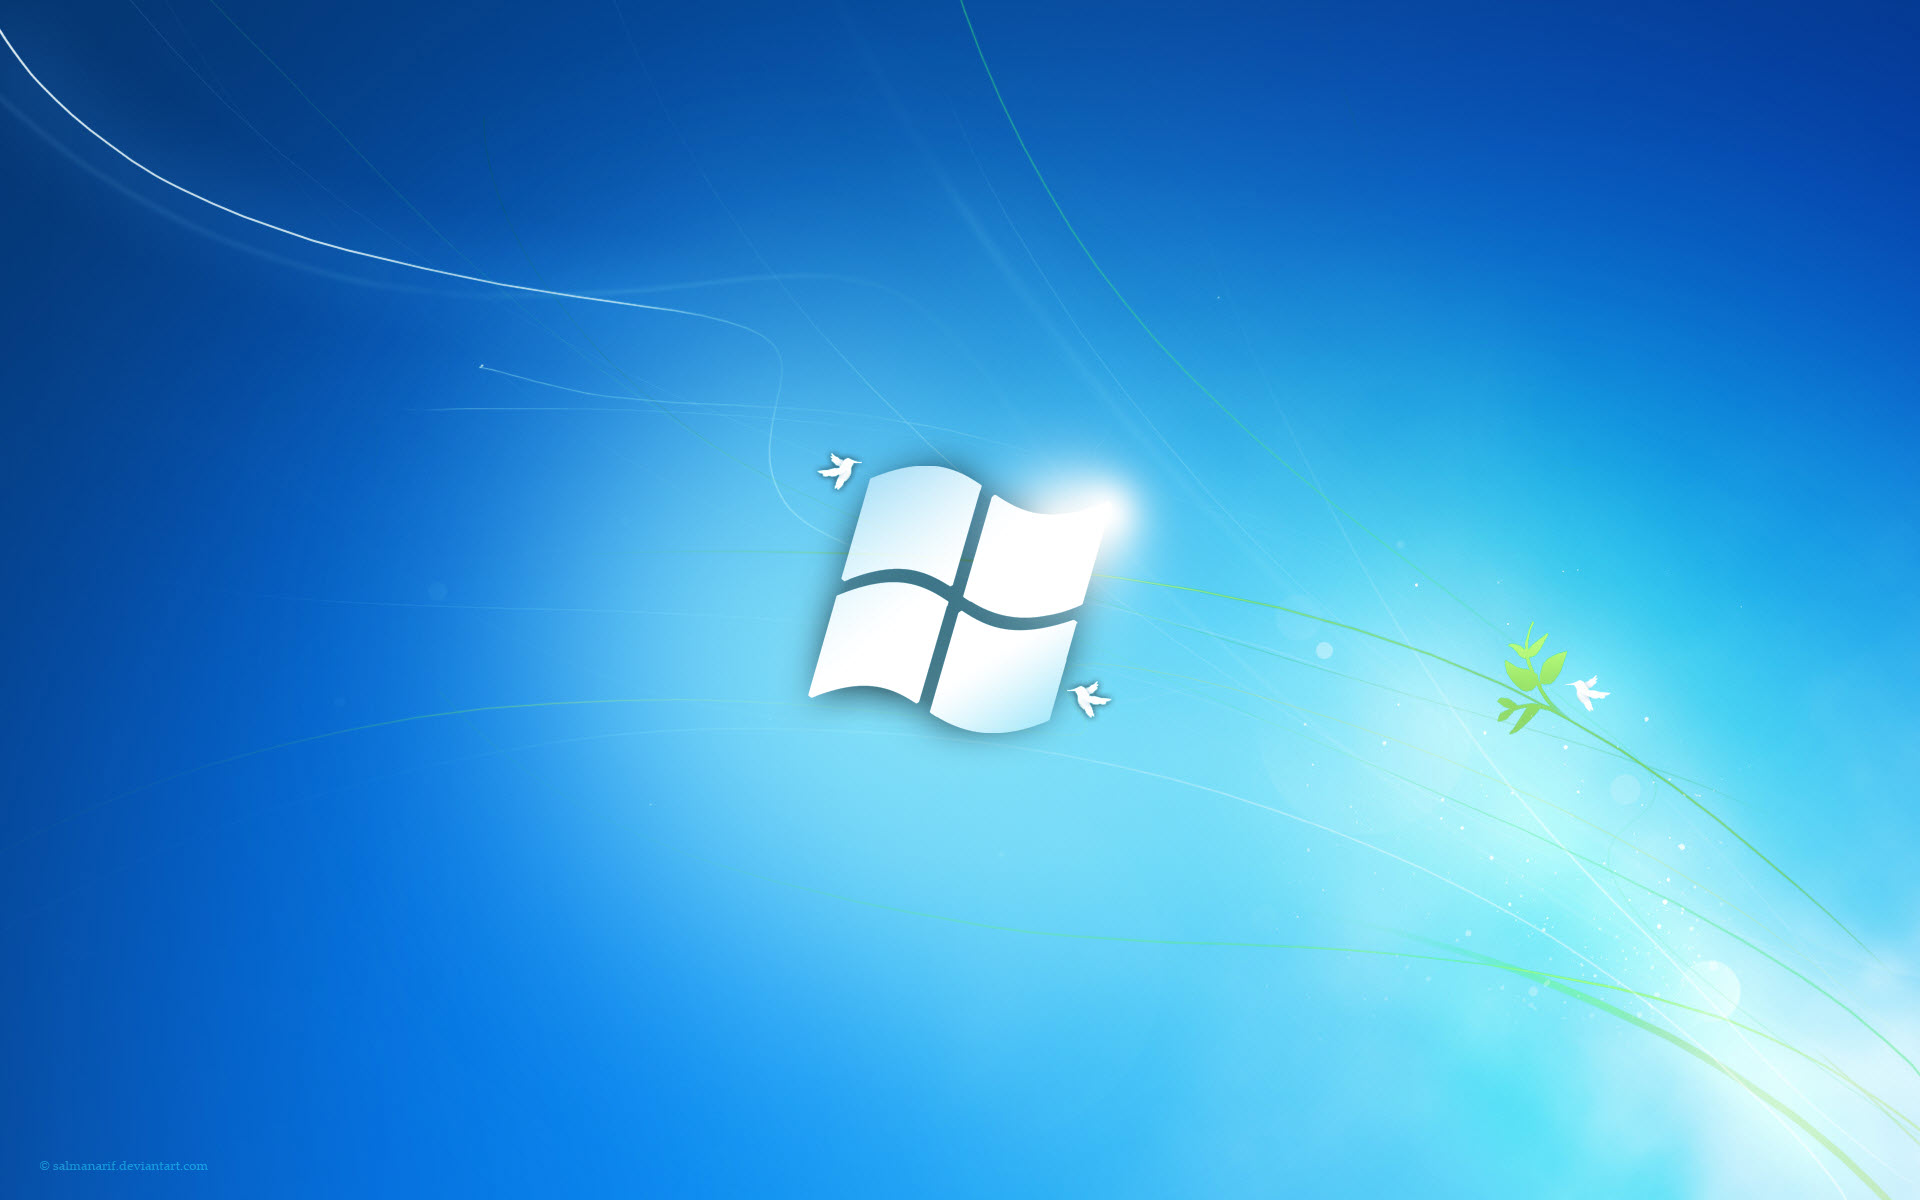 Windows 8.1 HD Wallpapers 1920X1080 - WallpaperSafari